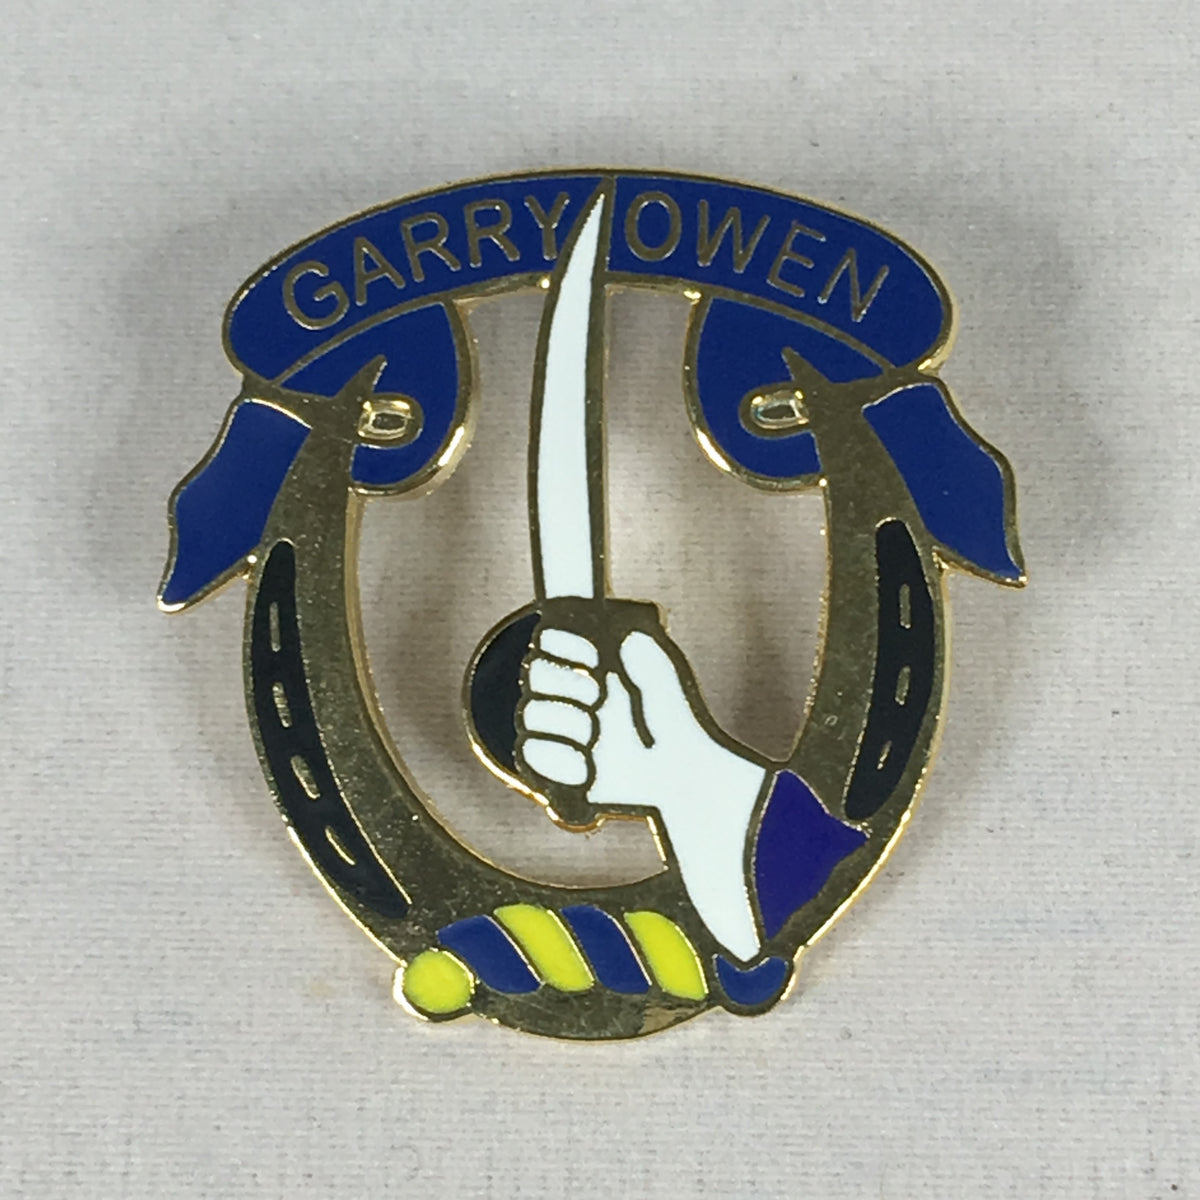 7th Calvary Pin